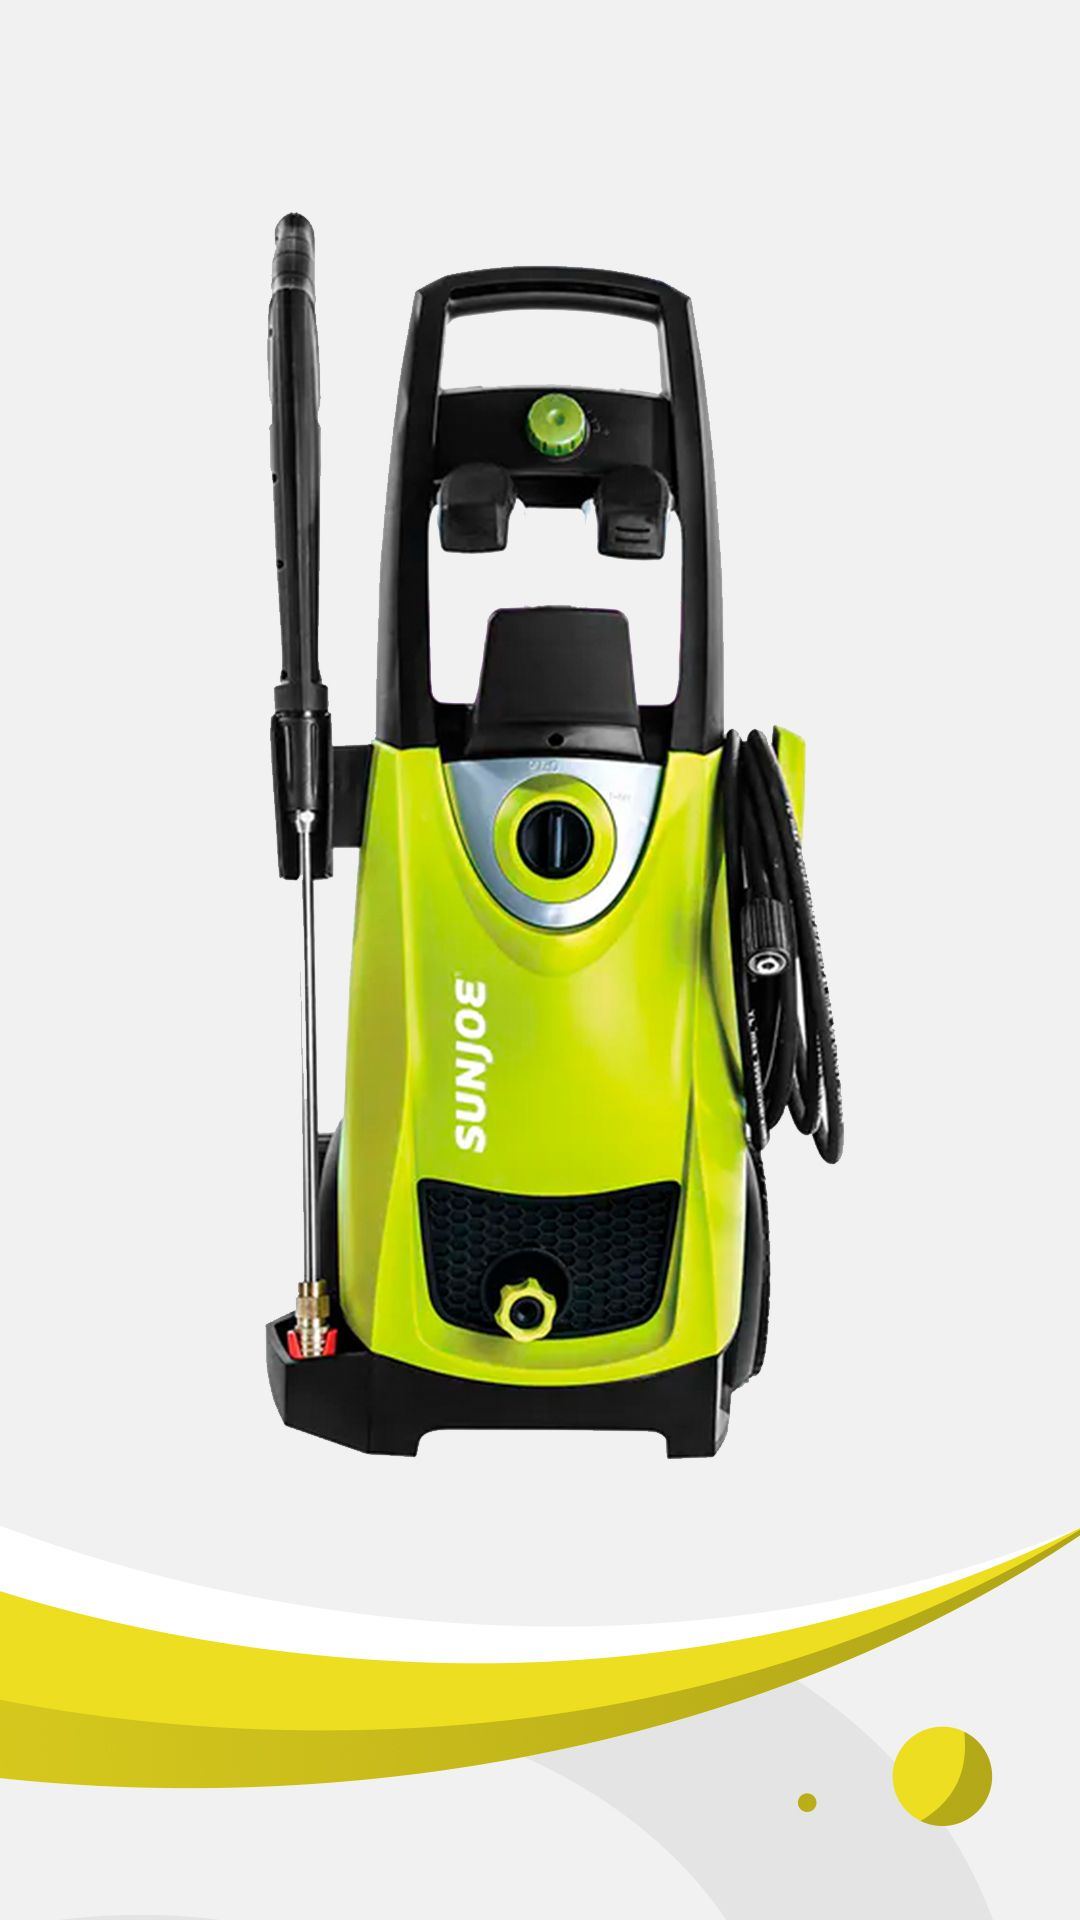 Read The Sun Joe Spx3000 Pressure Washer Review That Includes Pros Cons Overall Specification And Our Unbi